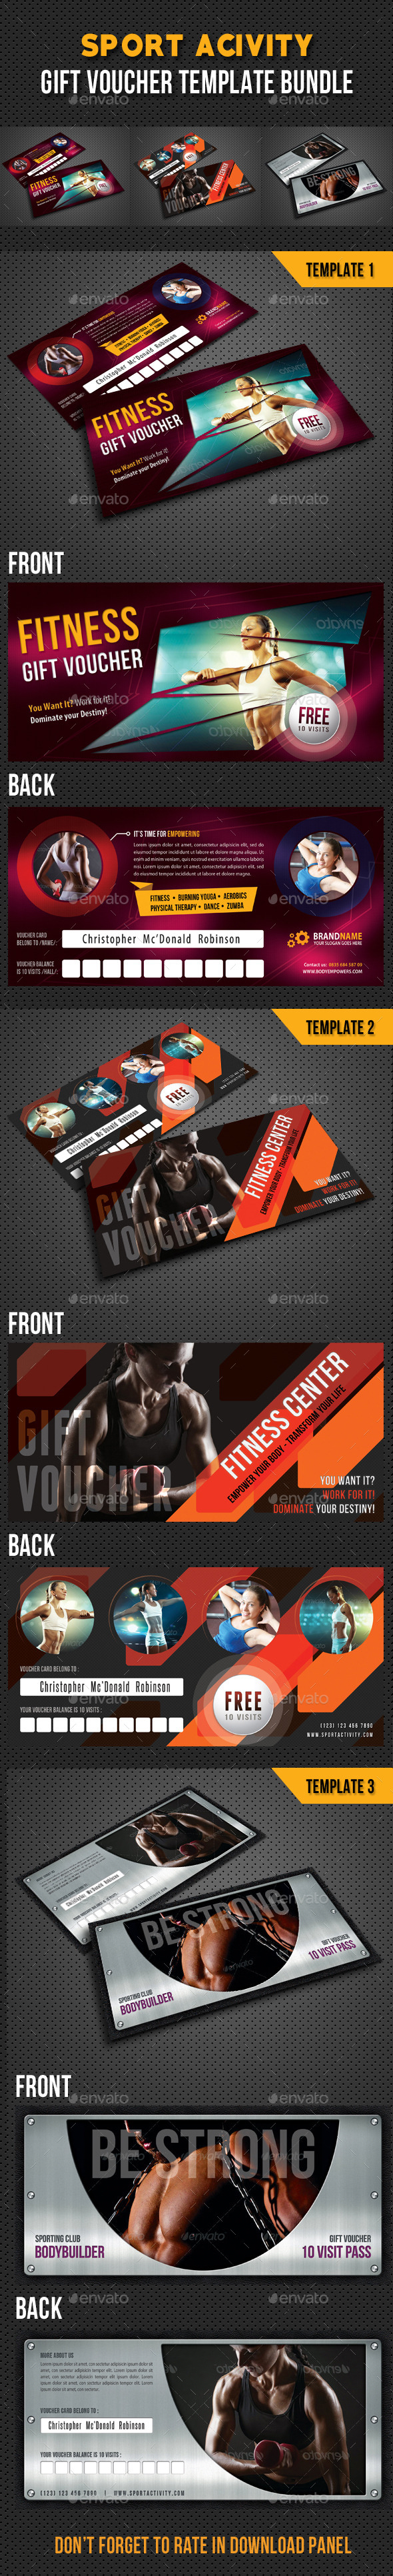 GraphicRiver 3 in 1 Sport Activity Gift Voucher Bundle 02 9284780